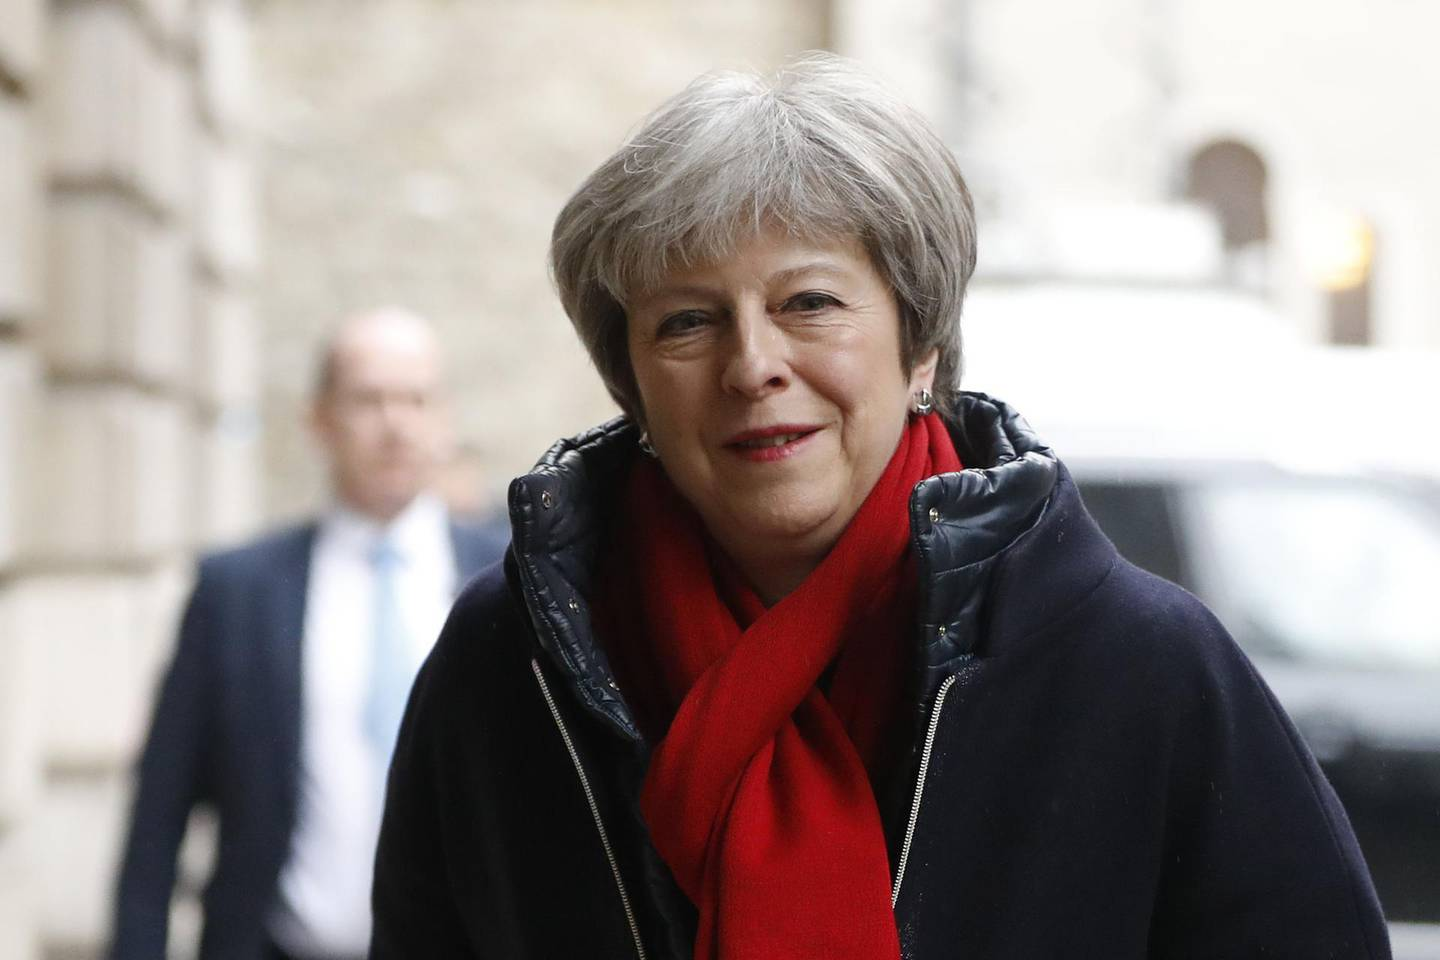 British Prime Minister Theresa May arrives at Mansion House in central London to give a speech on Brexit on March 2, 2018. / AFP PHOTO / Tolga AKMEN